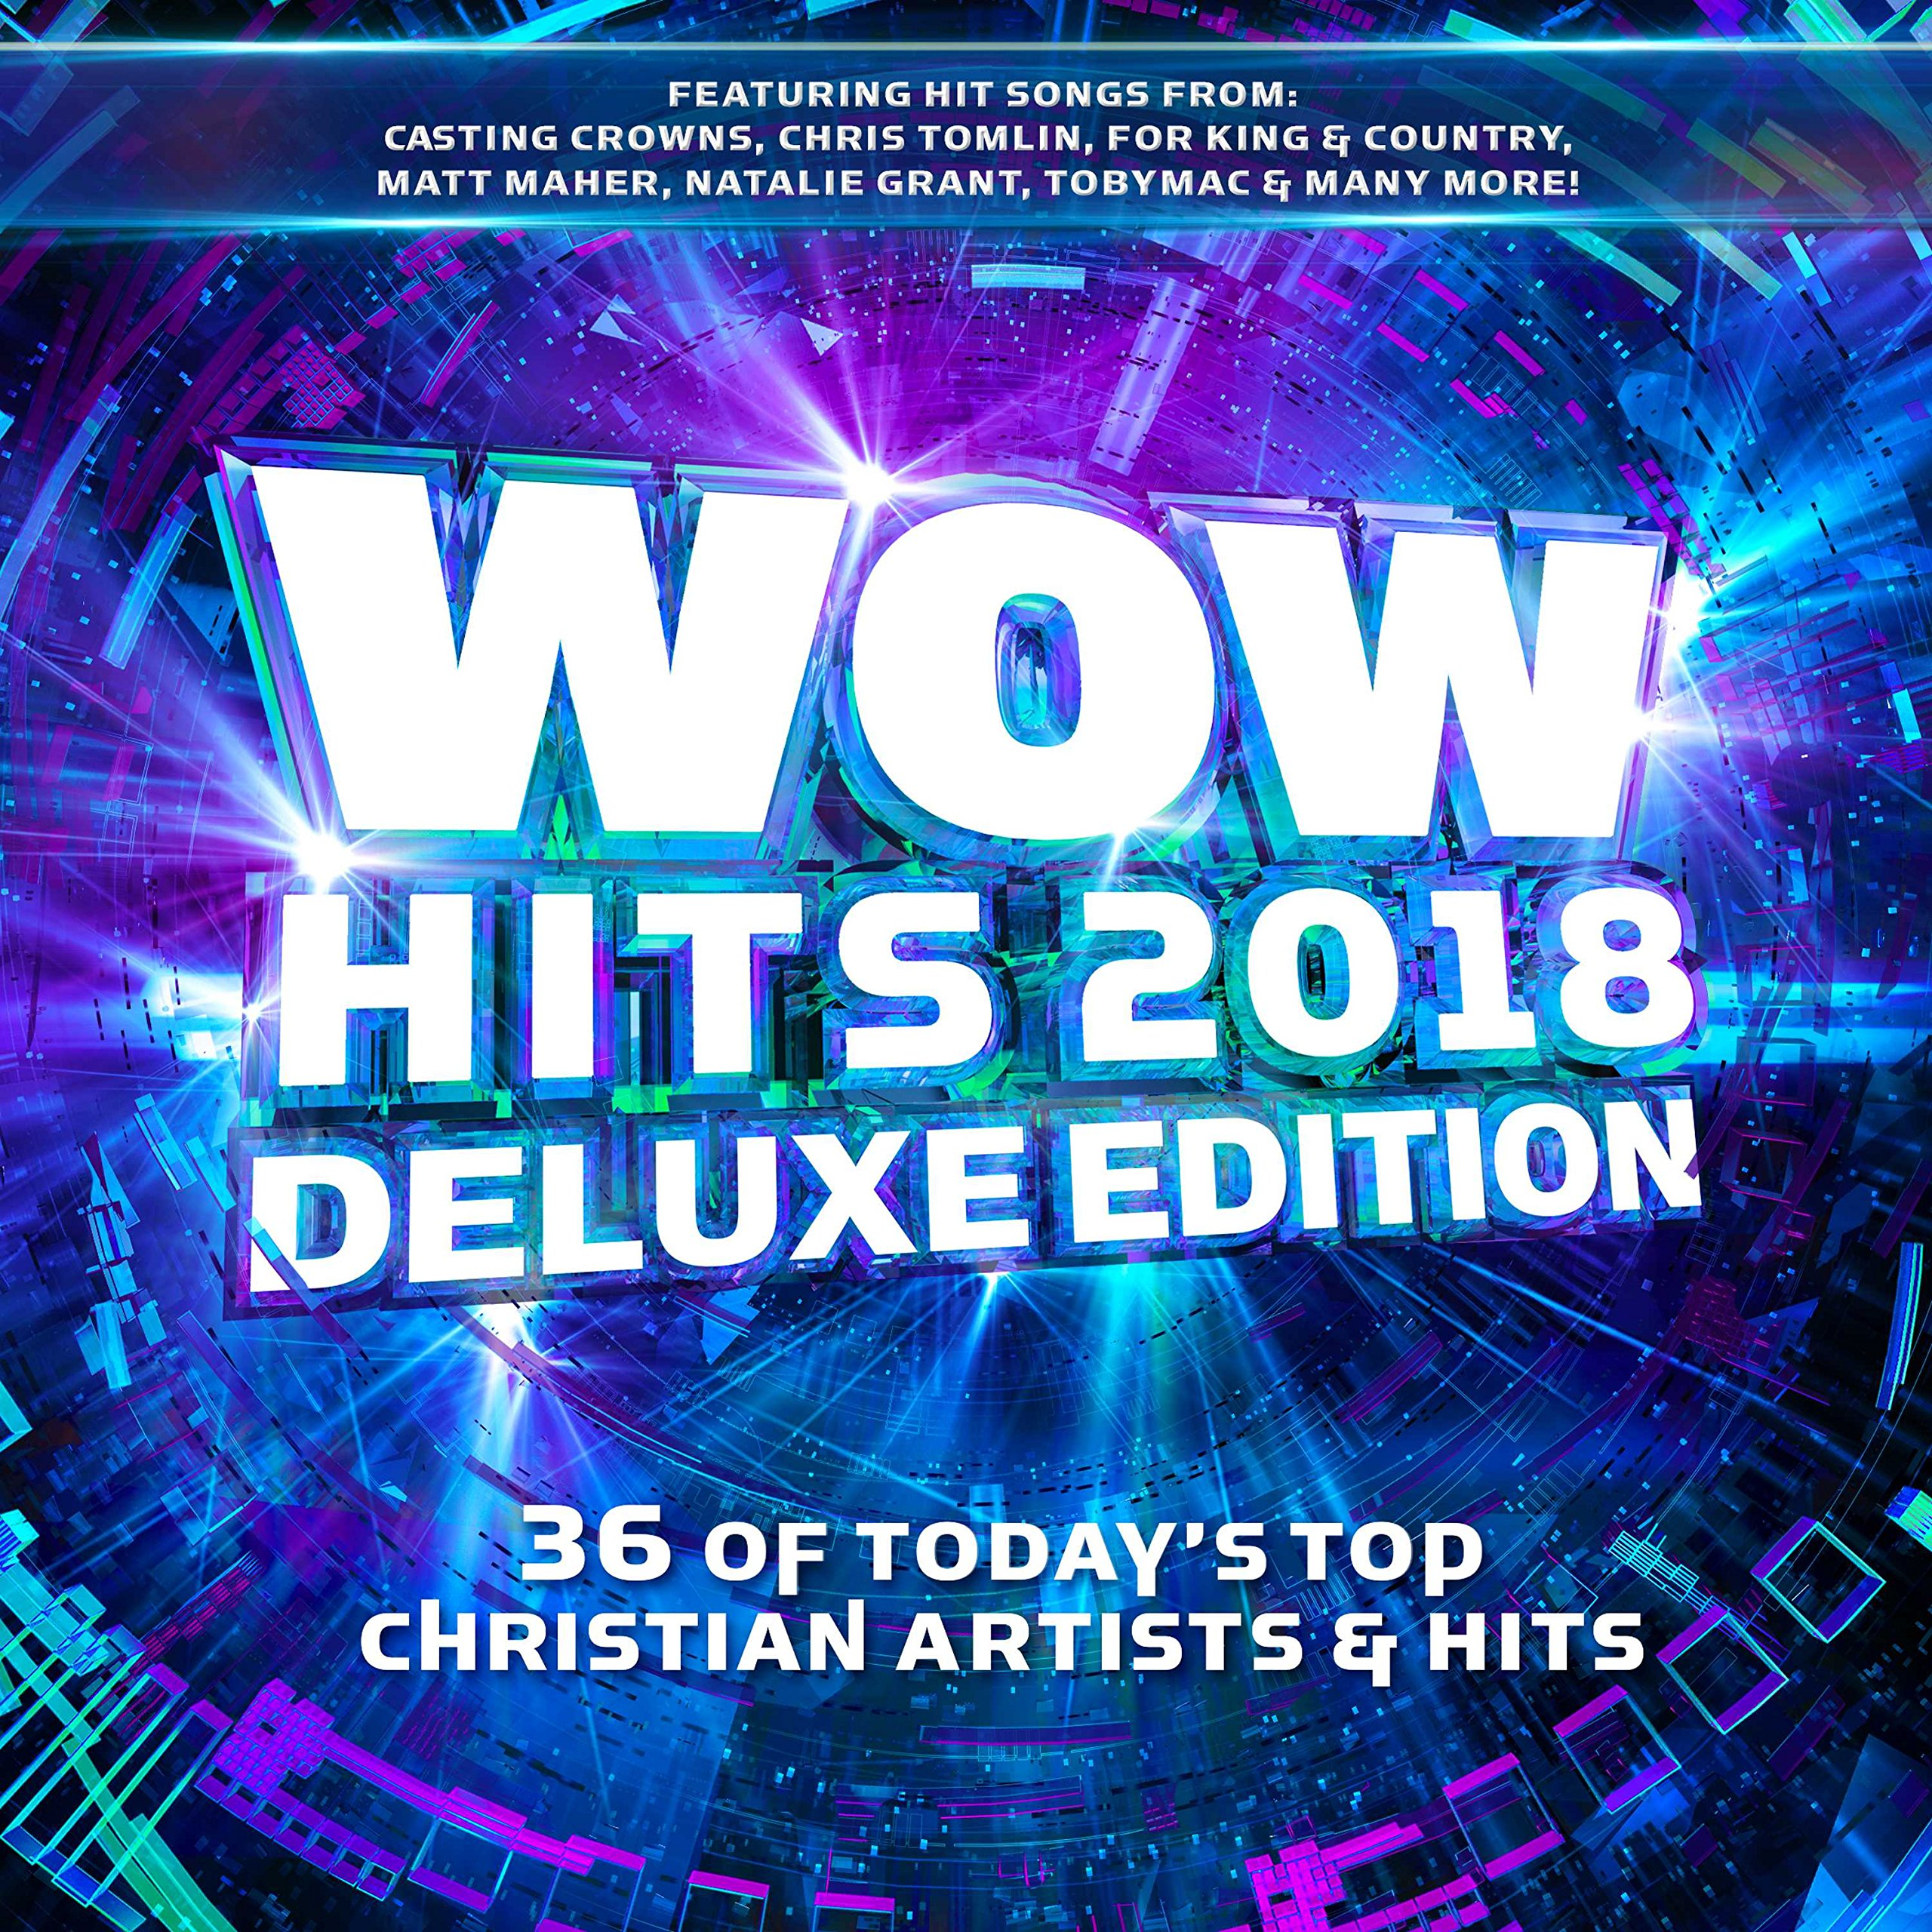 WOW Hits 2018 [2 CD][Deluxe Edition] by Capitol Christian Distribution